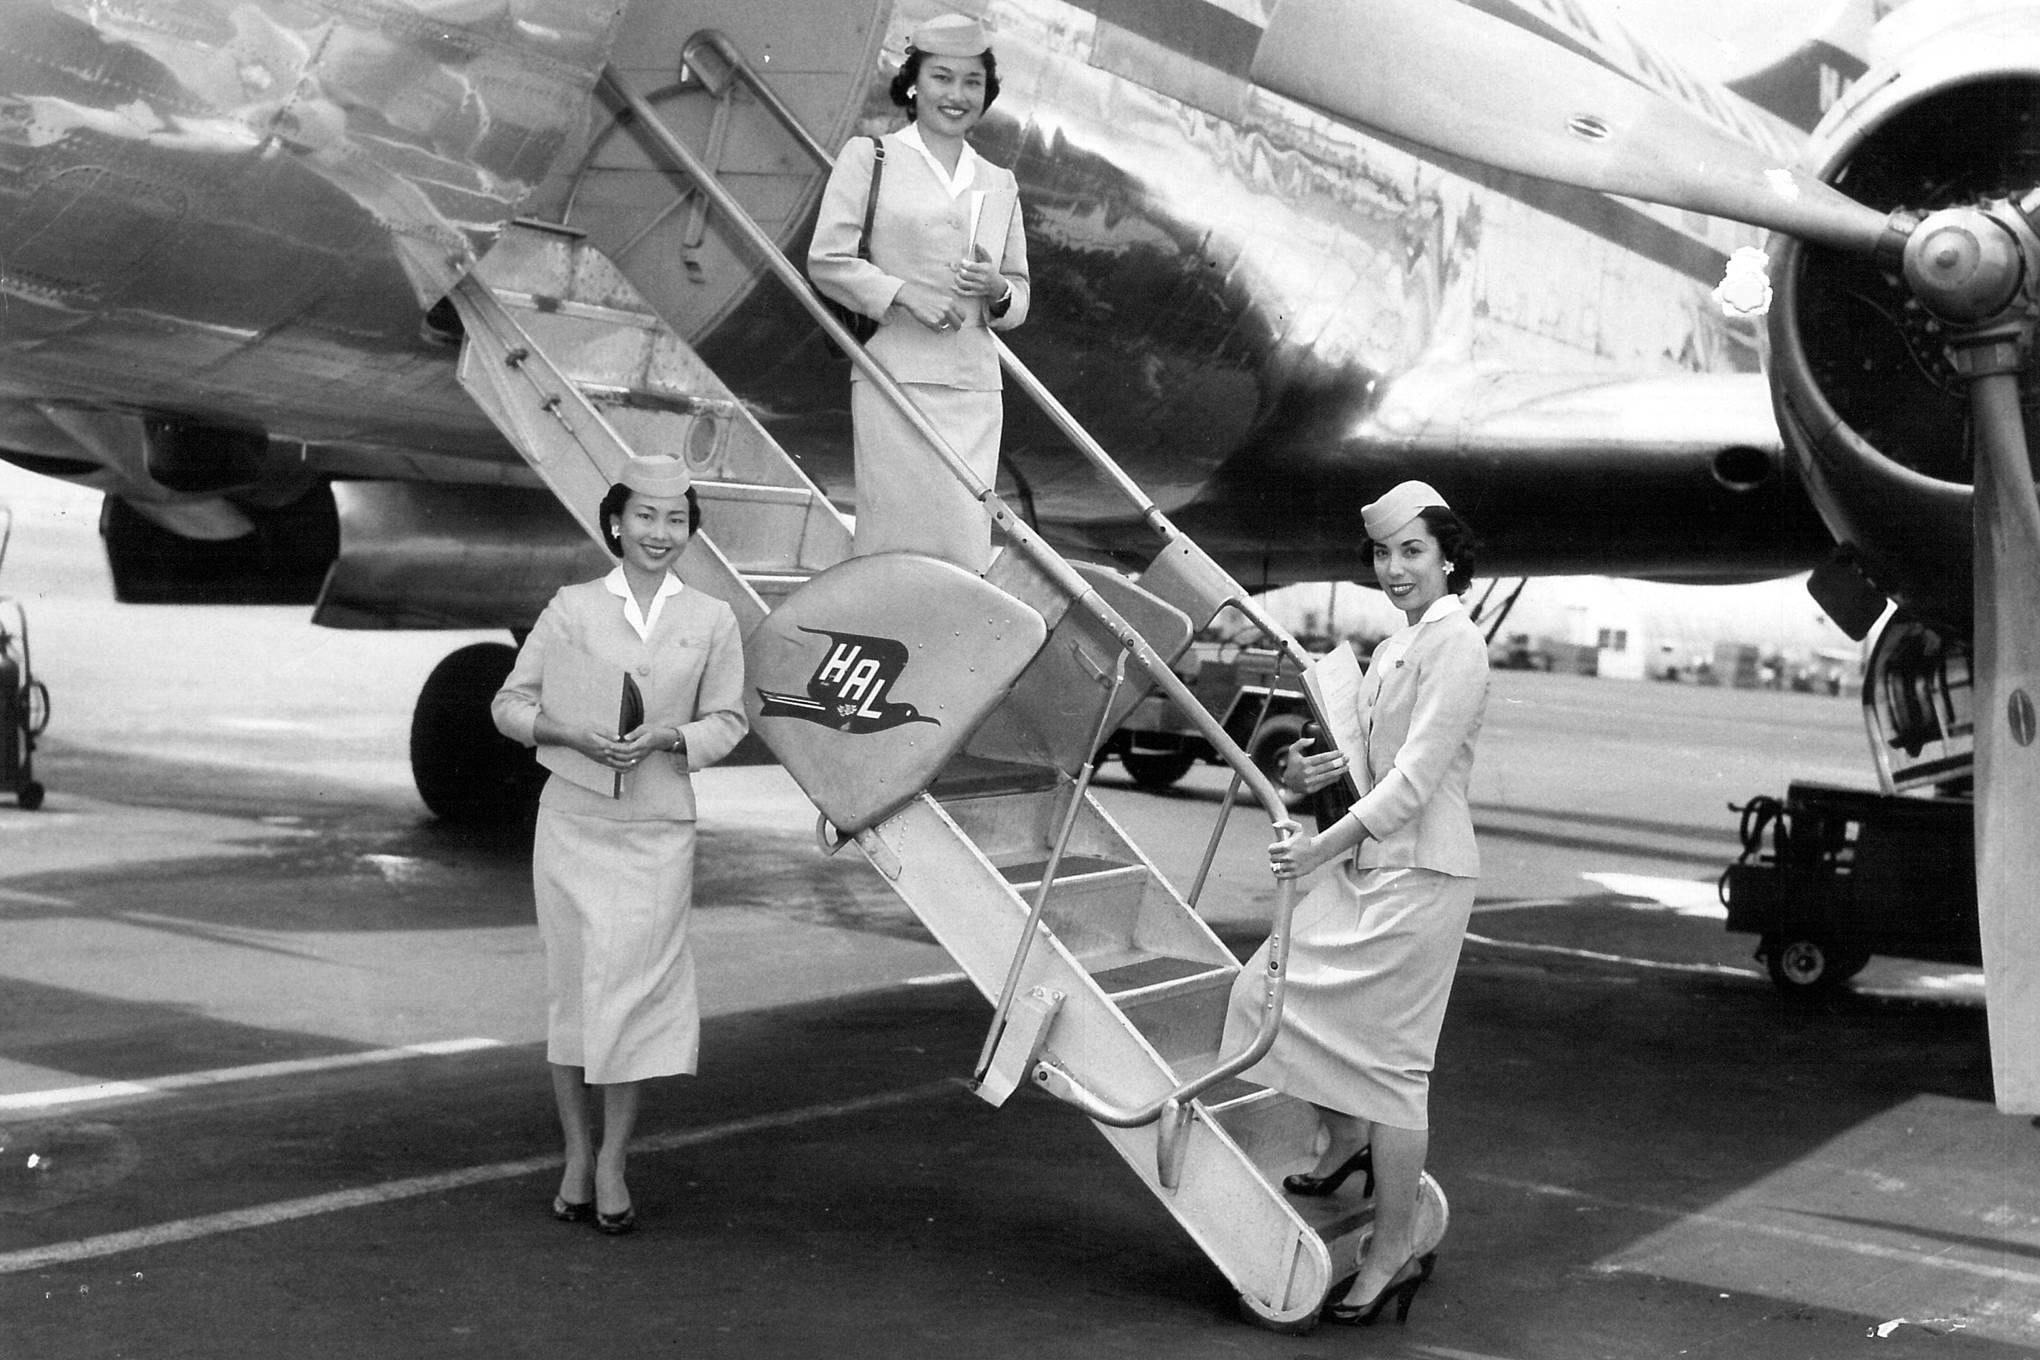 I was a flight attendant during the Golden Age of travel